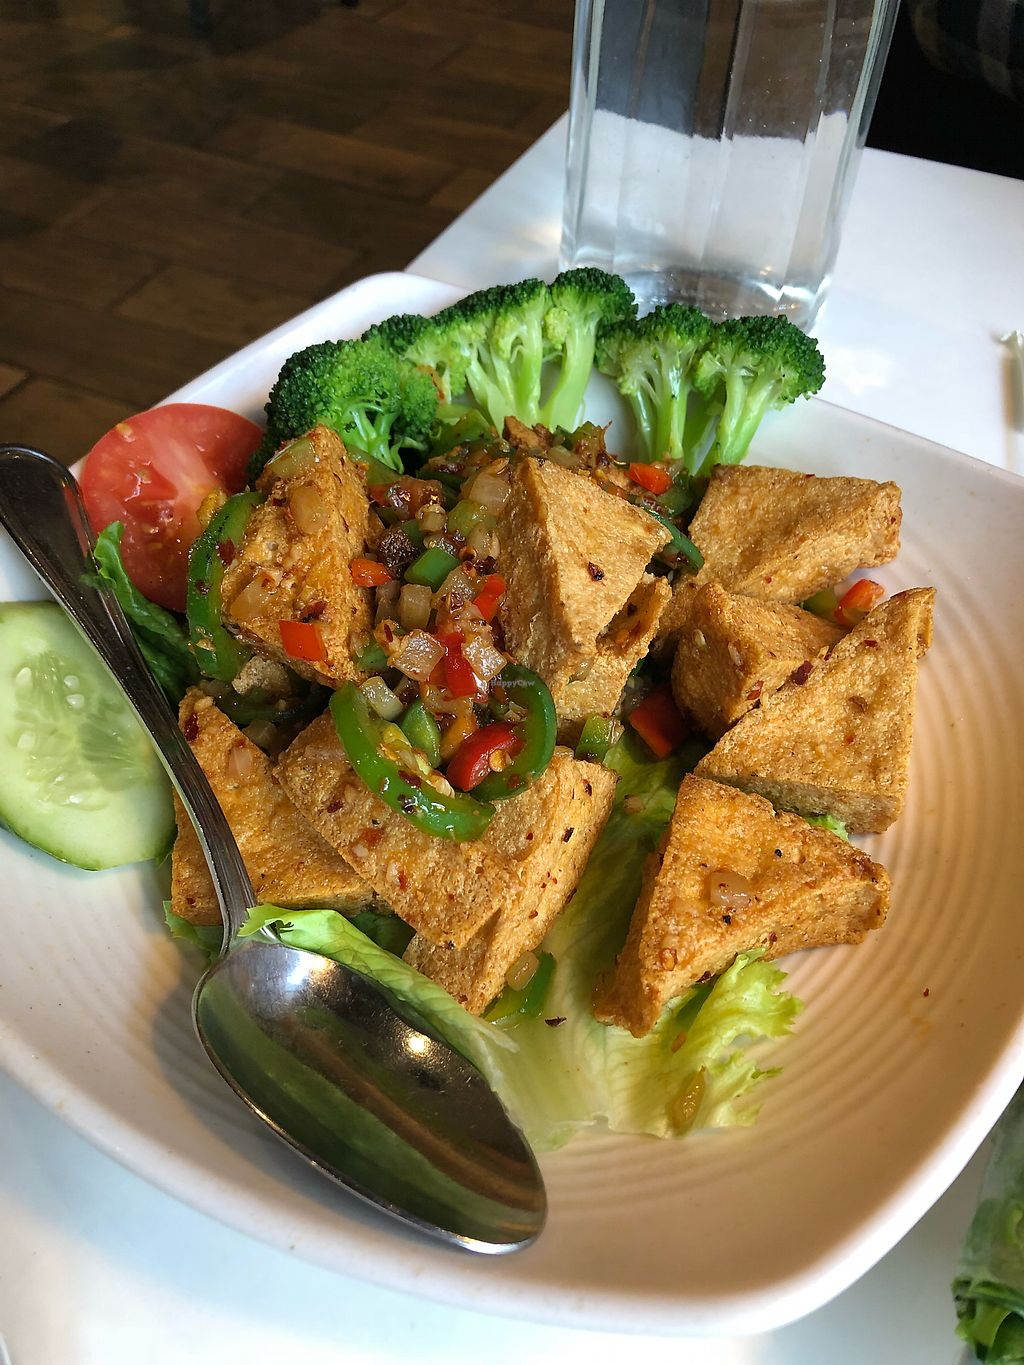 """Photo of Golden Era Vegan Restaurant  by <a href=""""/members/profile/KaitlynnGill"""">KaitlynnGill</a> <br/>Jalapeño tofu <br/> December 31, 2017  - <a href='/contact/abuse/image/1557/341402'>Report</a>"""